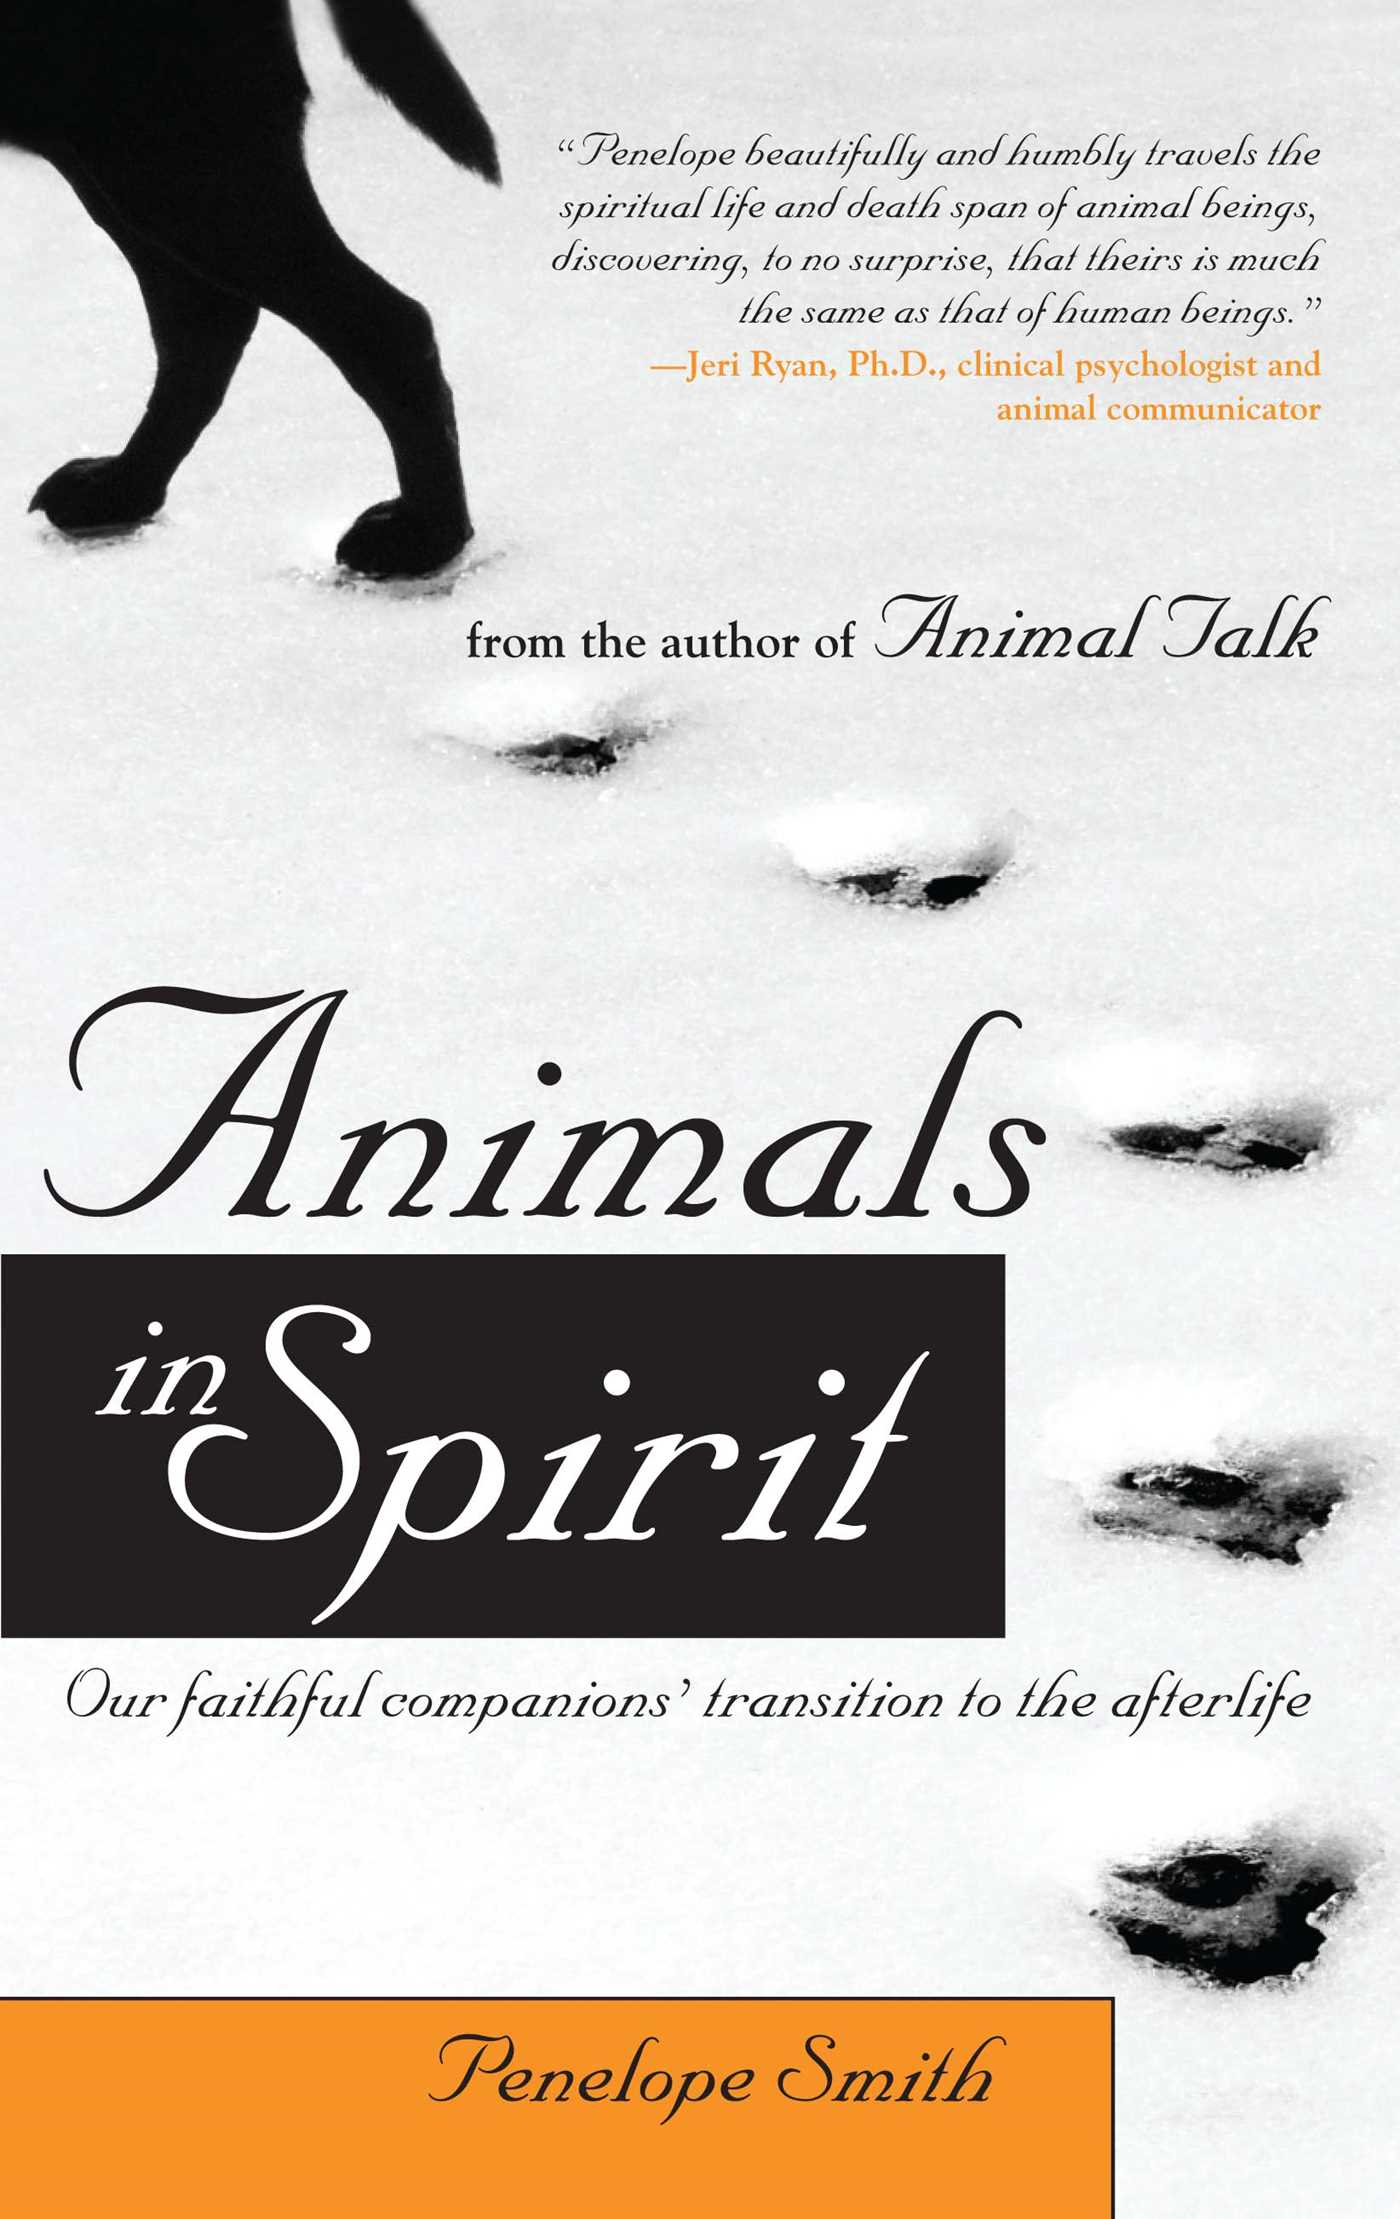 Animals in spirit 9781582701776 hr